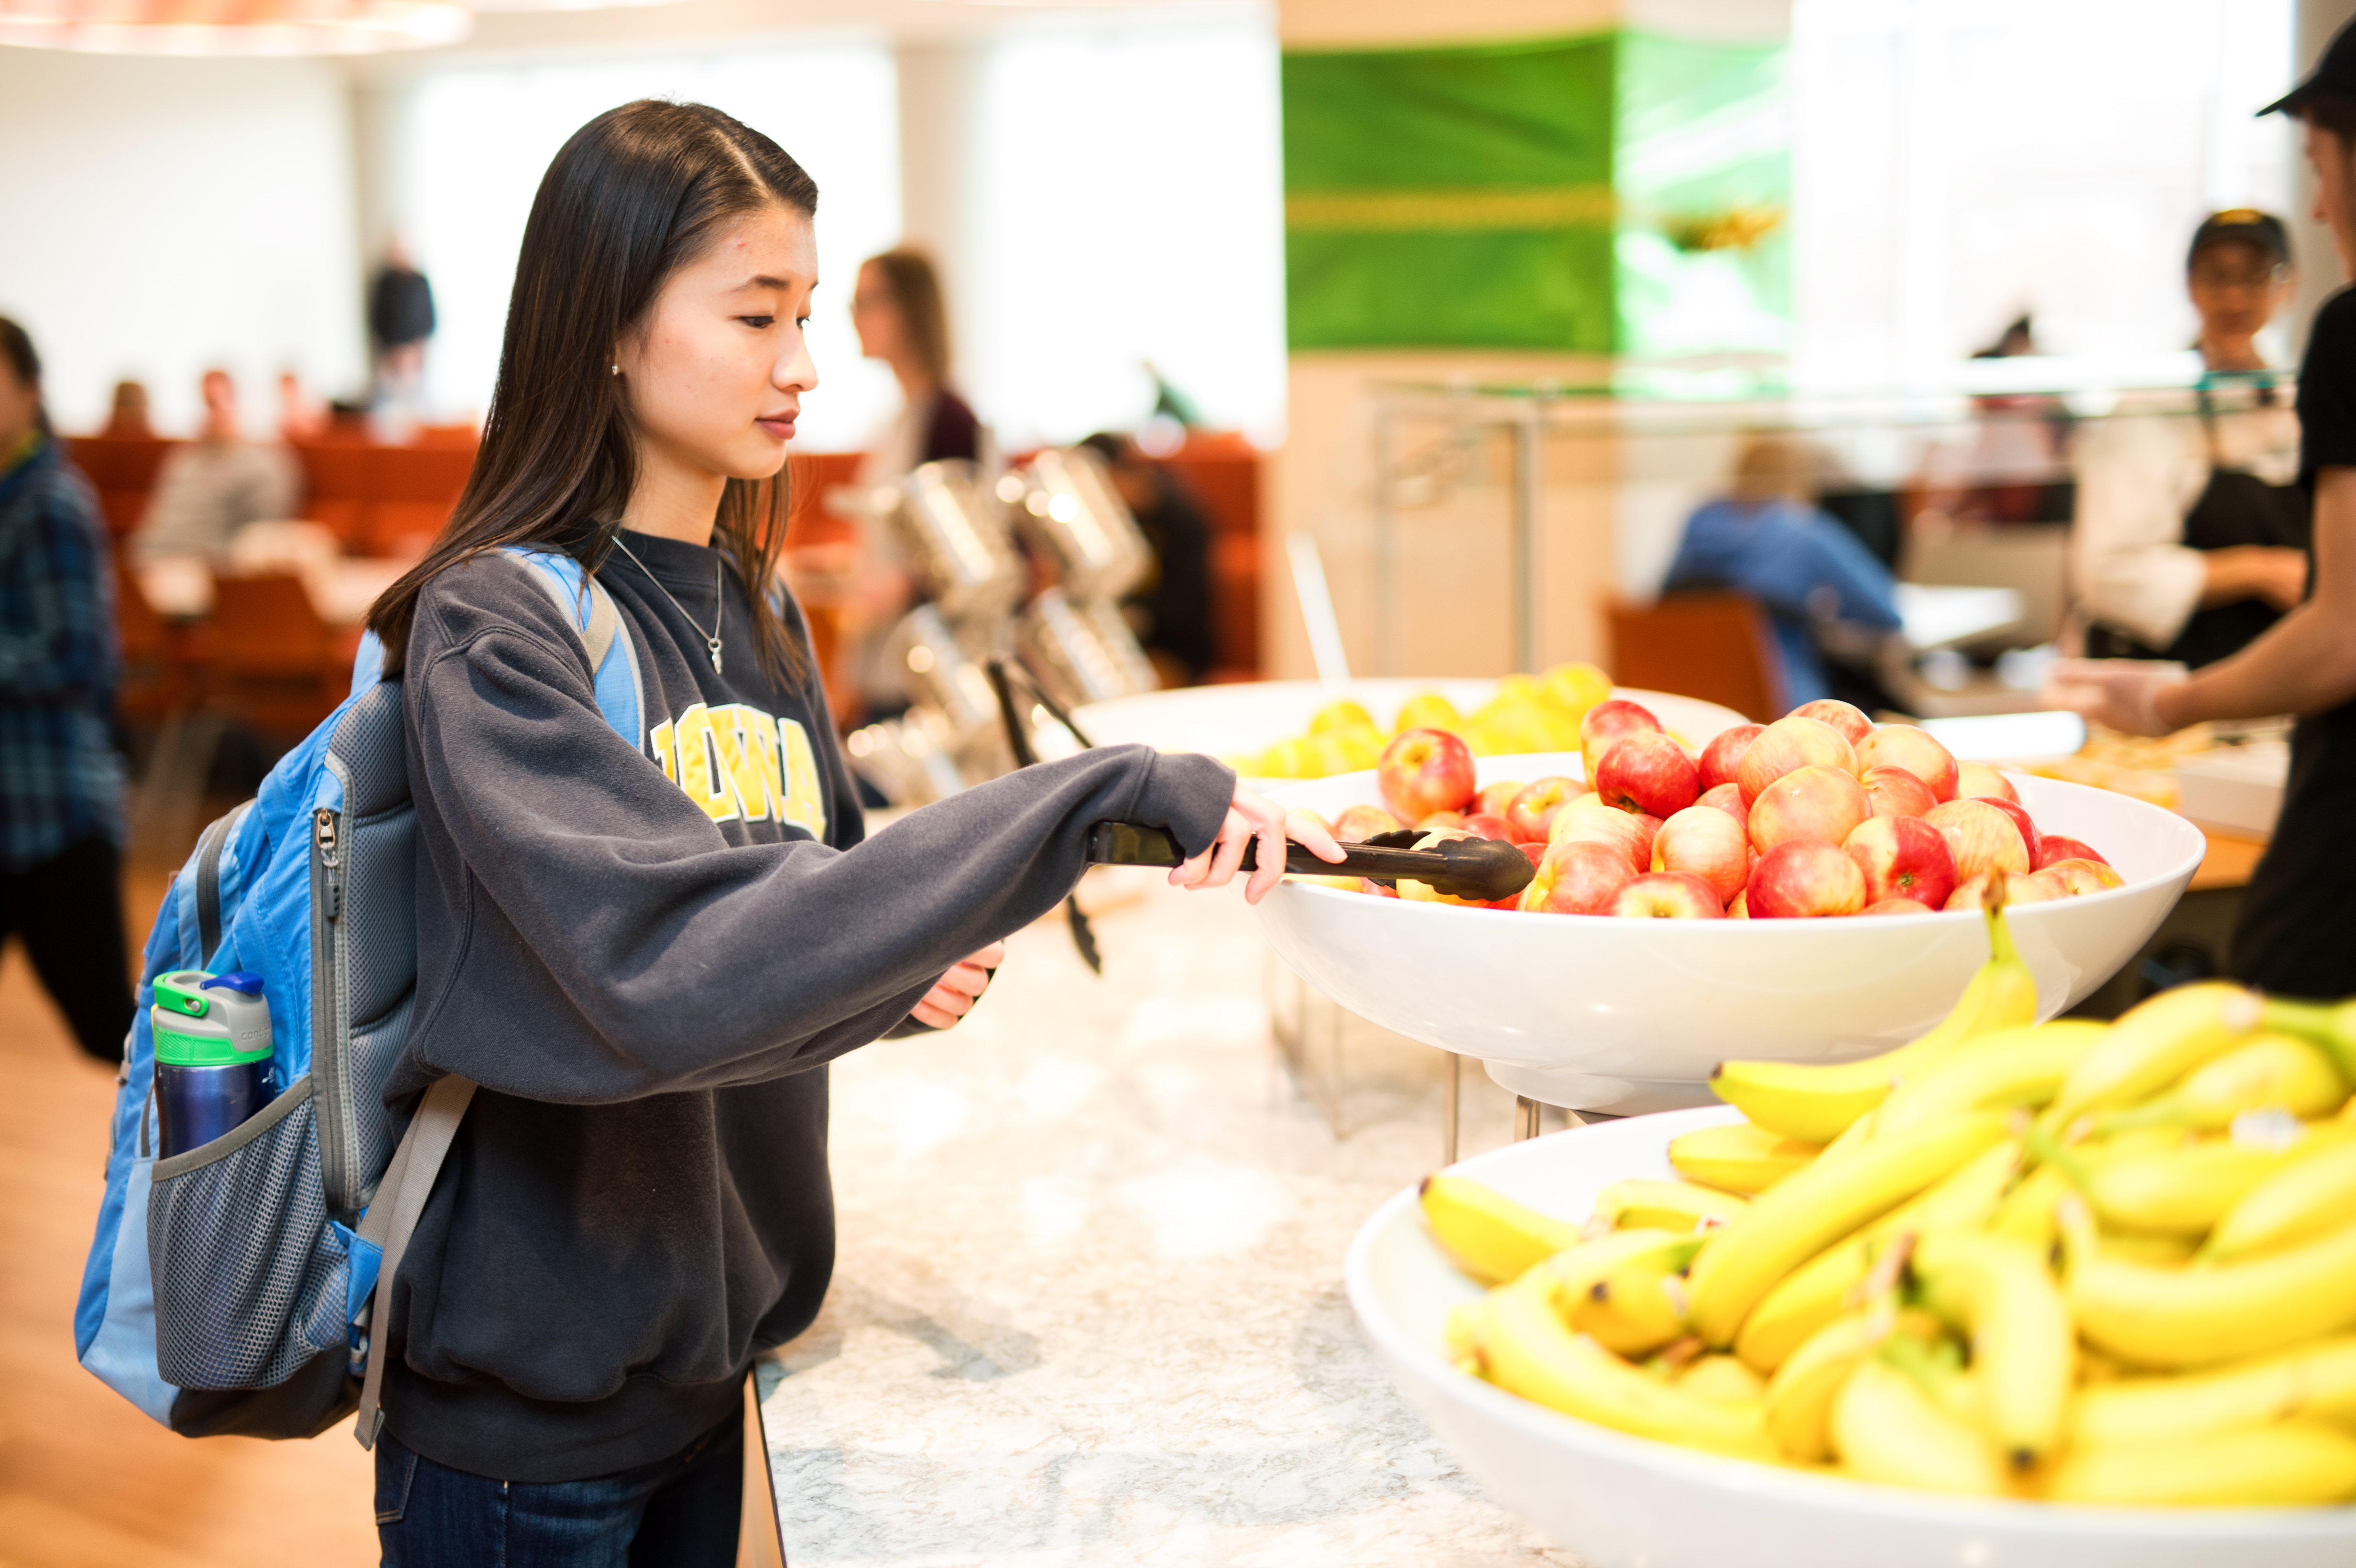 Student reaches for apple at Catlett Marketplace UIOWA